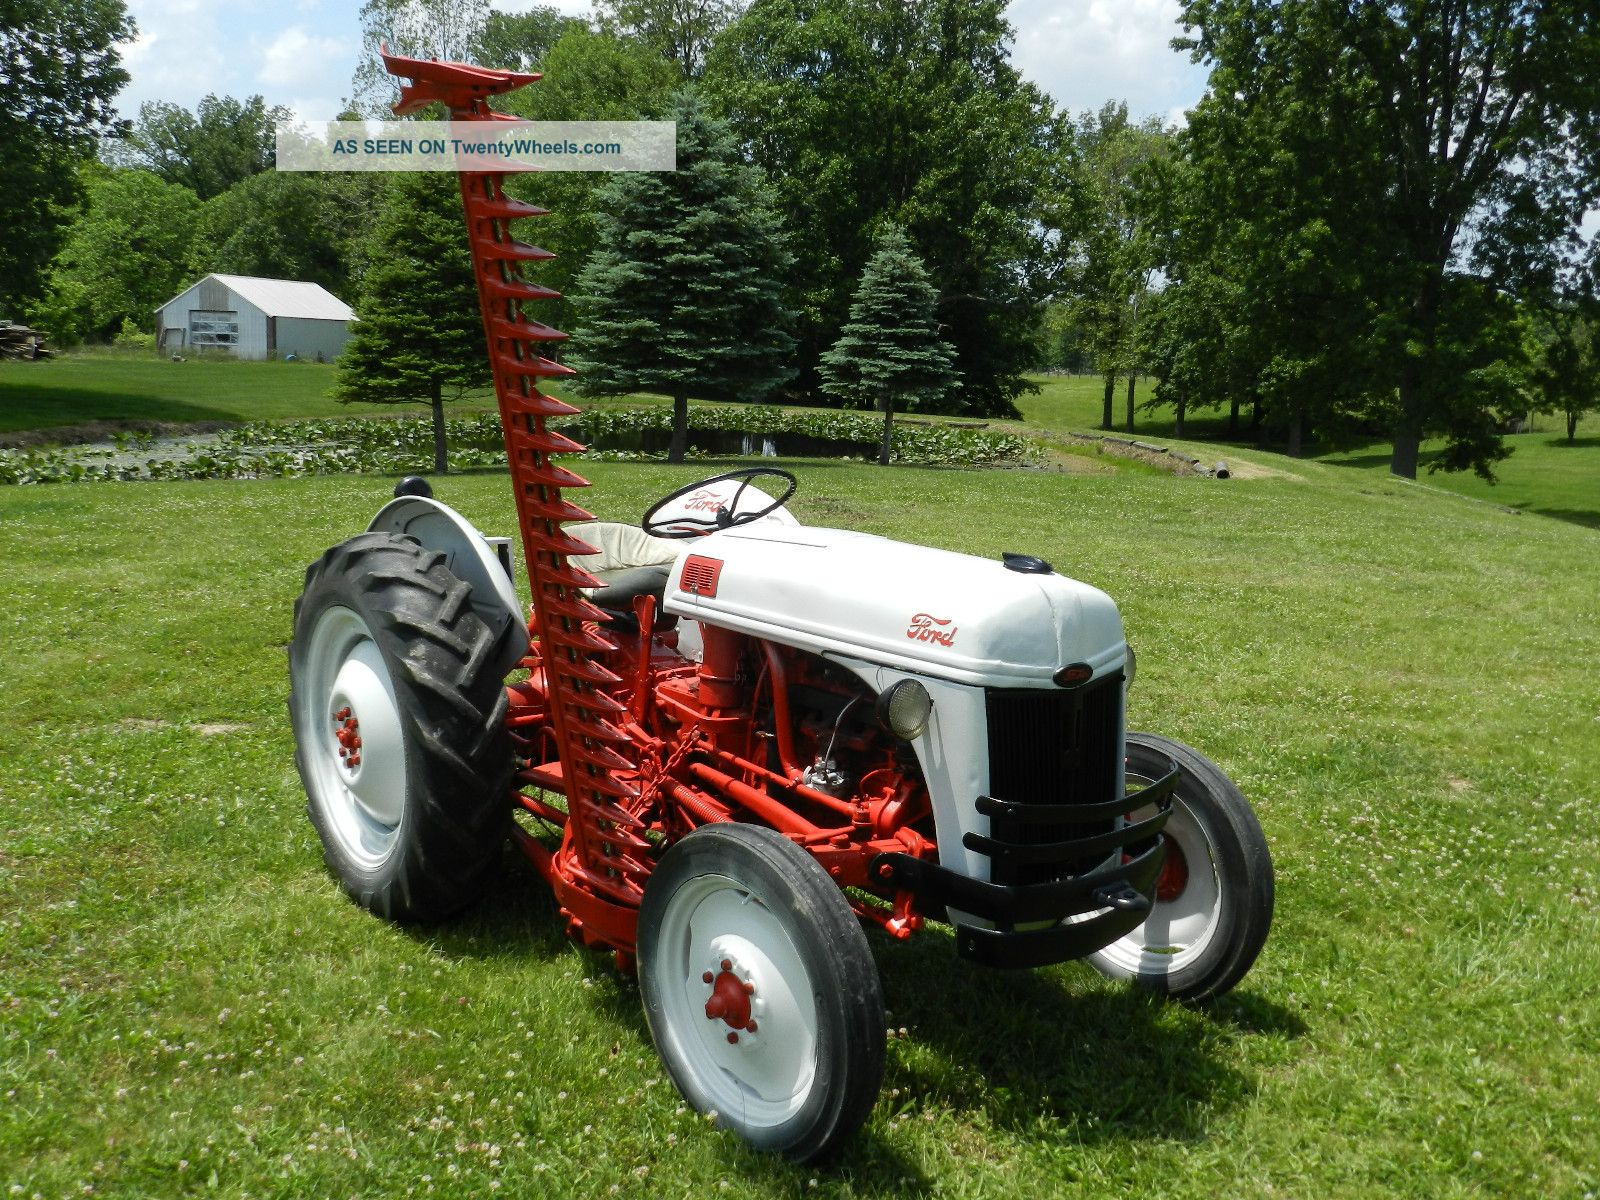 1952 Ford 8n Tractor & 6 Foot Side Sickle Bar Mower